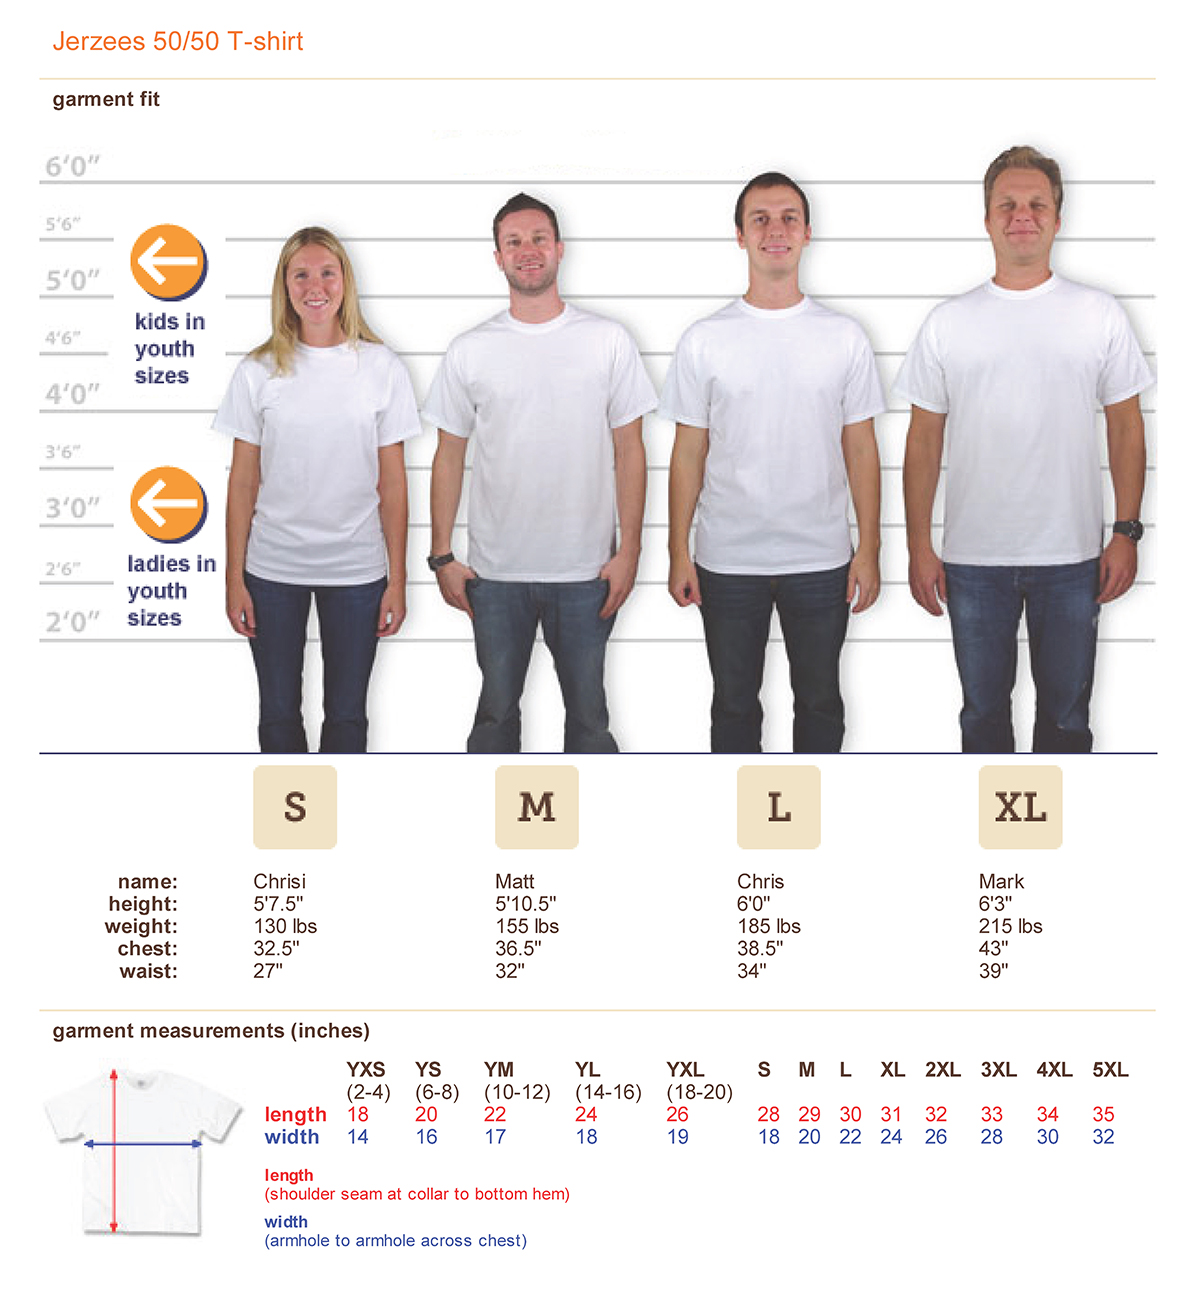 Blank Wholesale T-Shirts at low pricesTop Brands· Low Prices· Quantity Discounts· Wide Variety/10 (94 reviews).